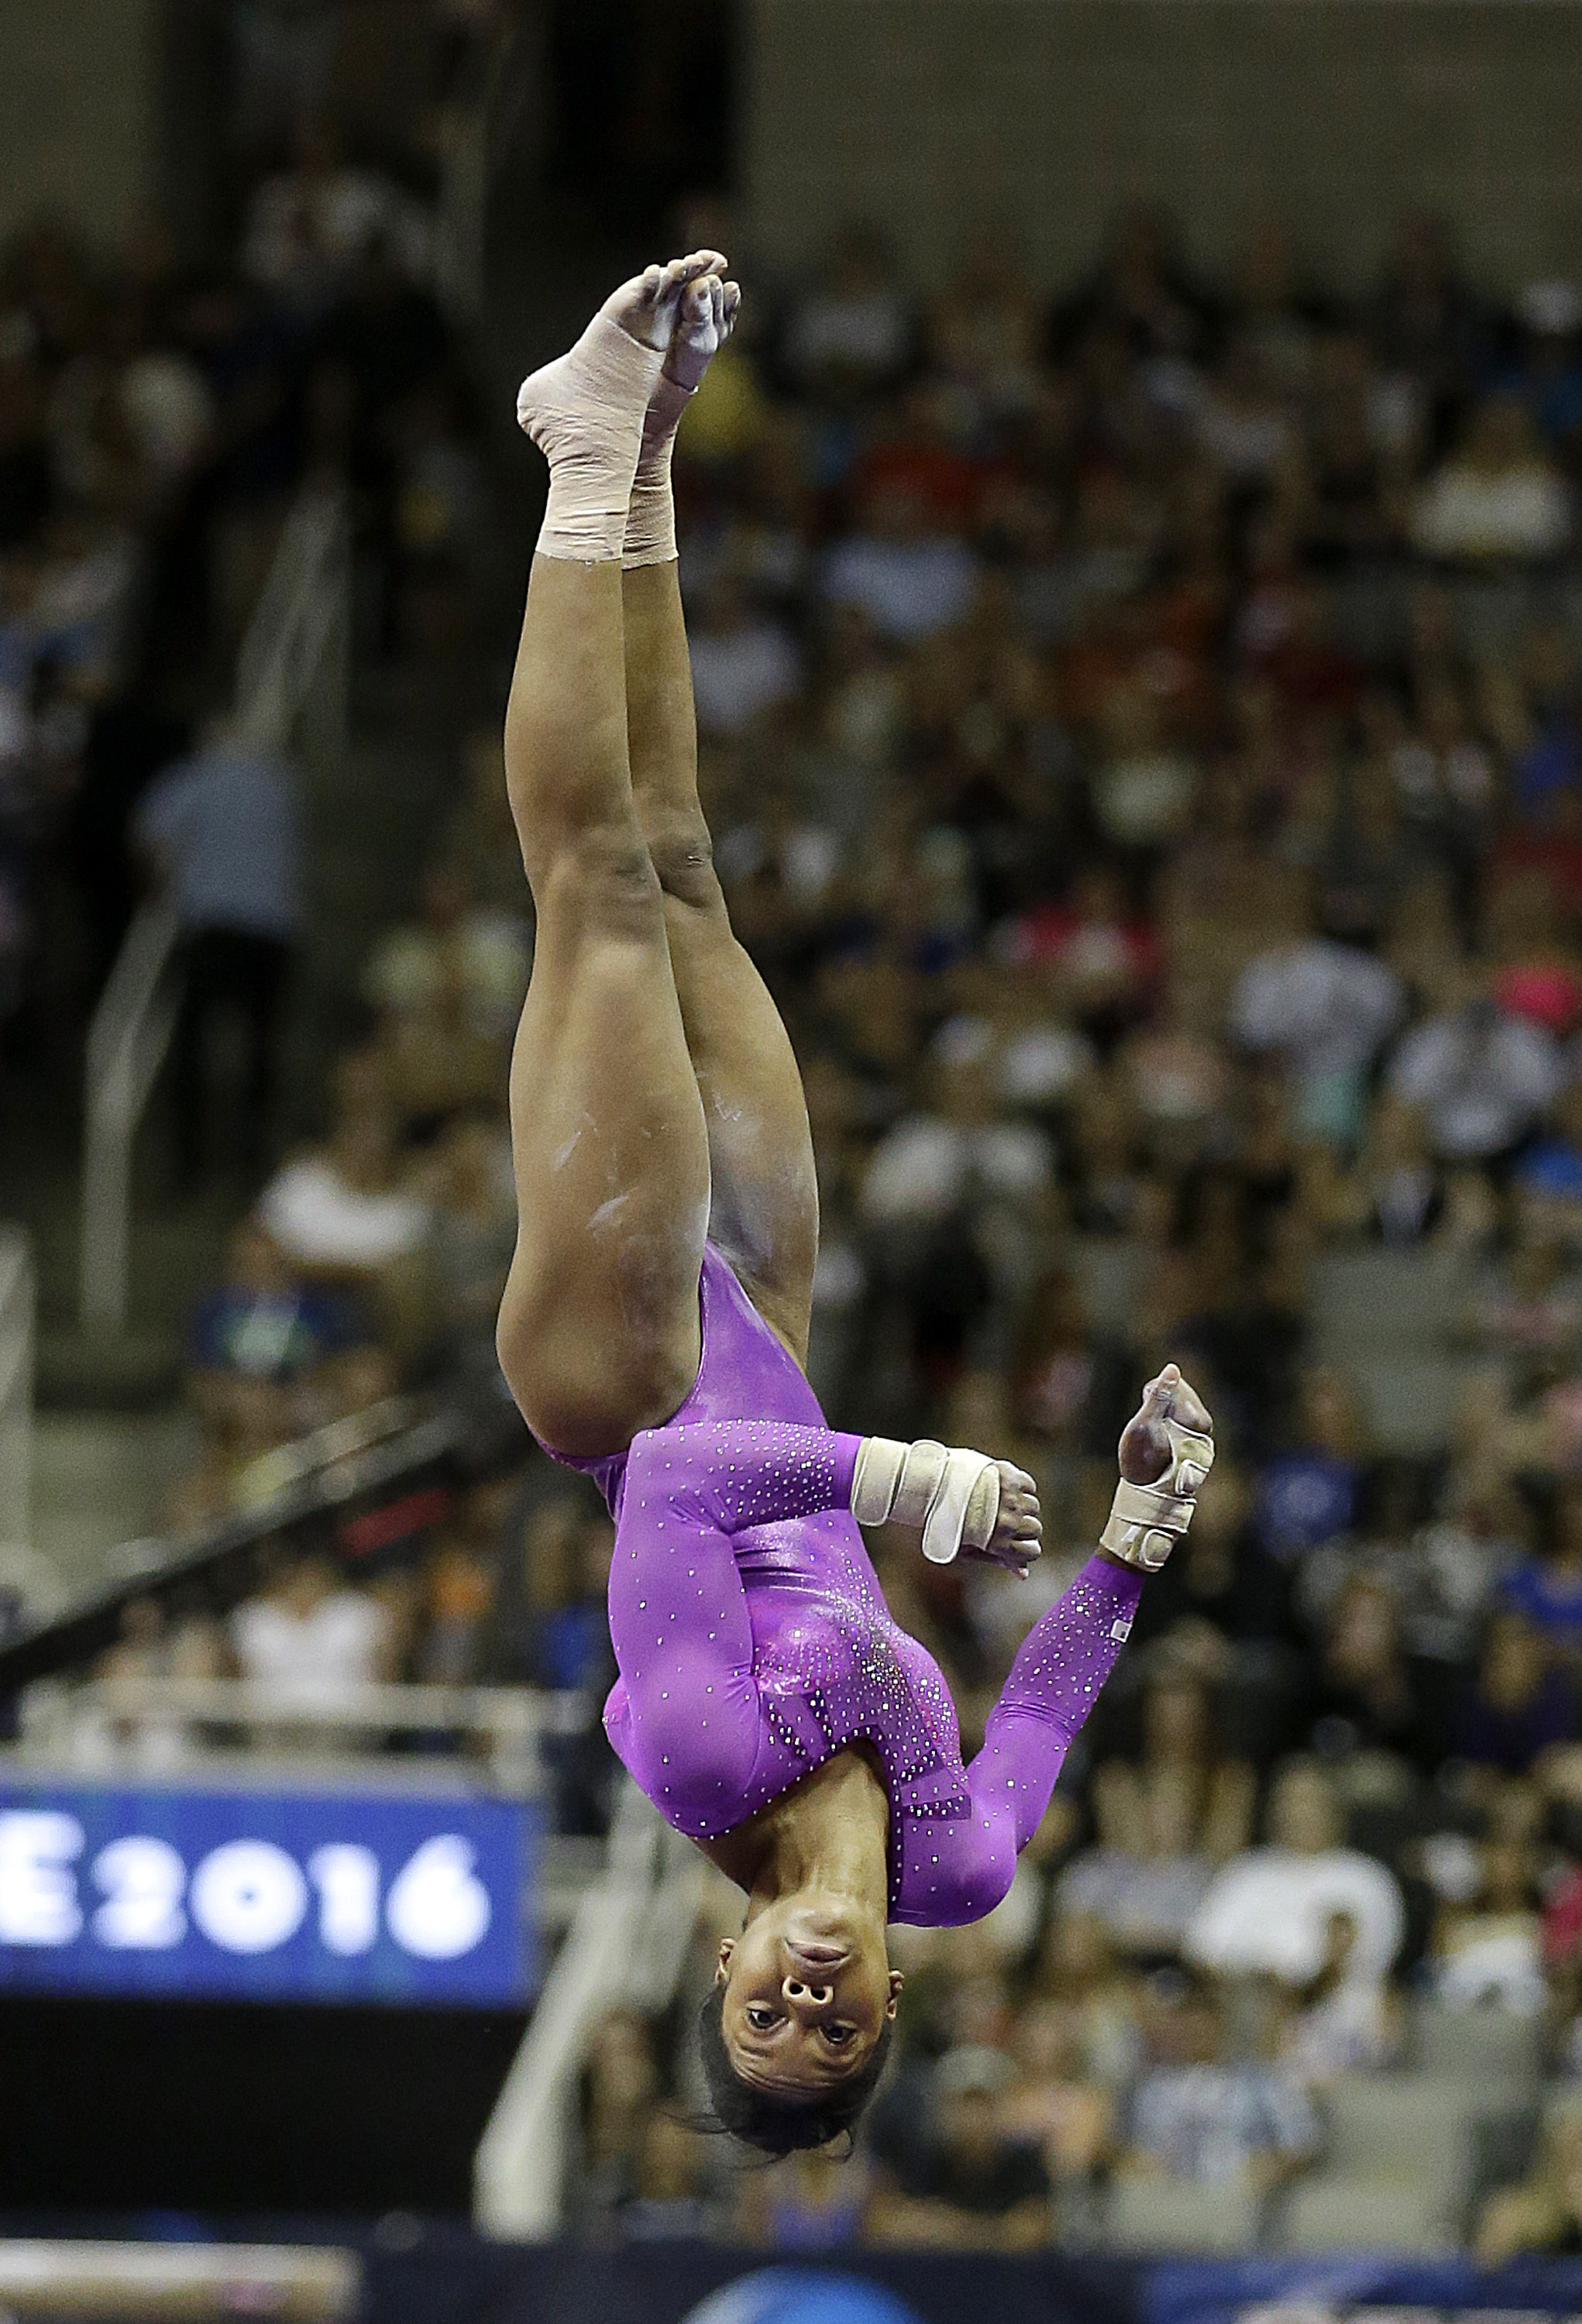 Gabrielle Douglas competes on the vault during the women's U.S. Olympic gymnastics trials in San Jose, Calif., Friday, July 8, 2016. (AP Photo/Ben Margot)